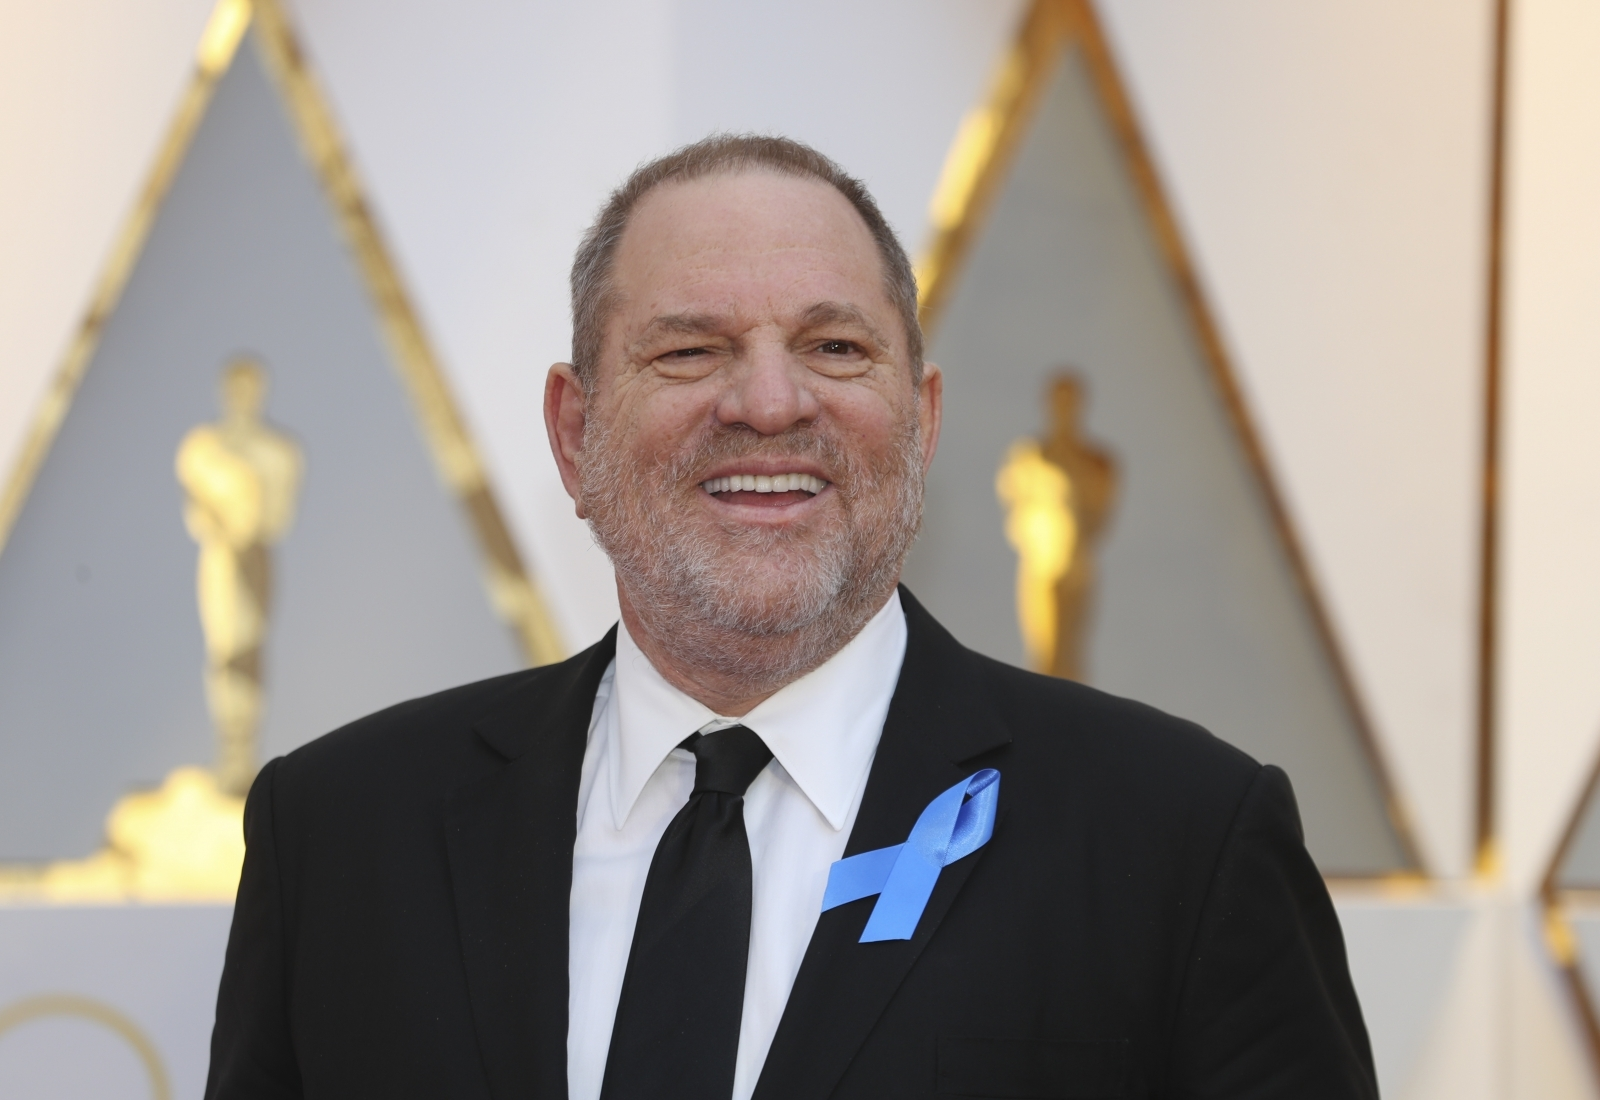 Harvey Weinstein to take 'leave of absence' as sexual harassment allegations surface